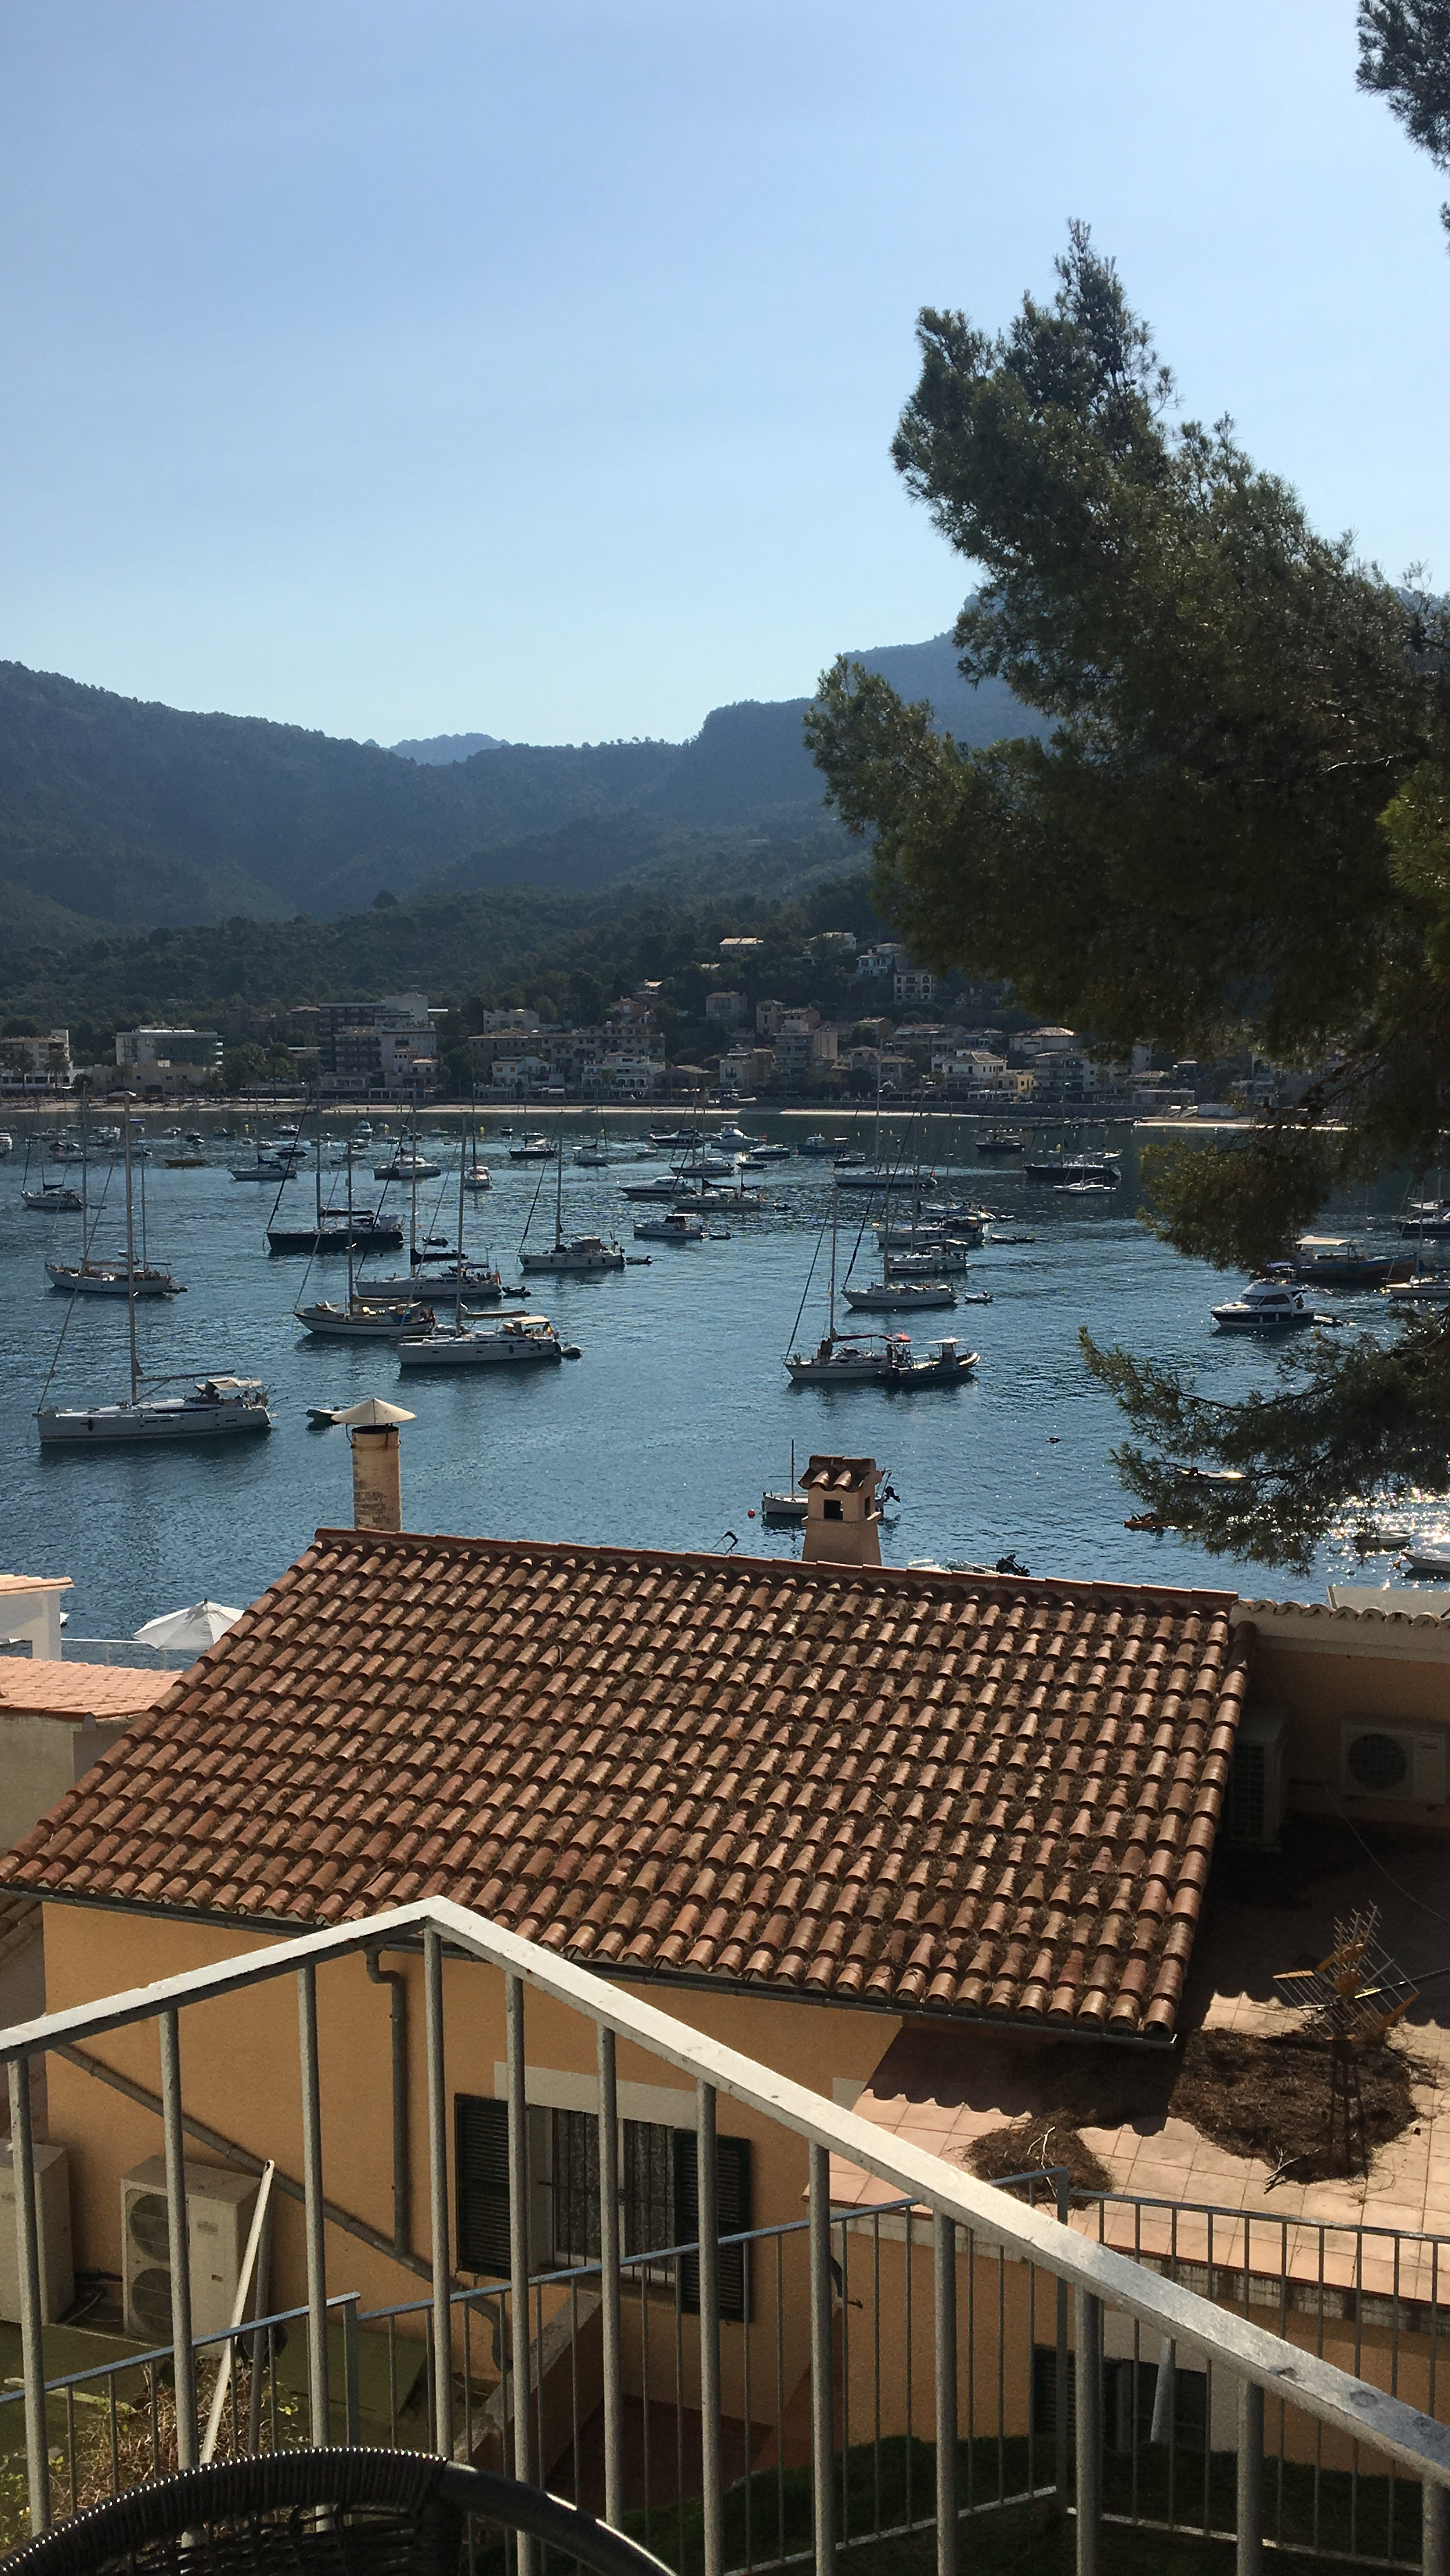 View of Port de Soller, Majorca